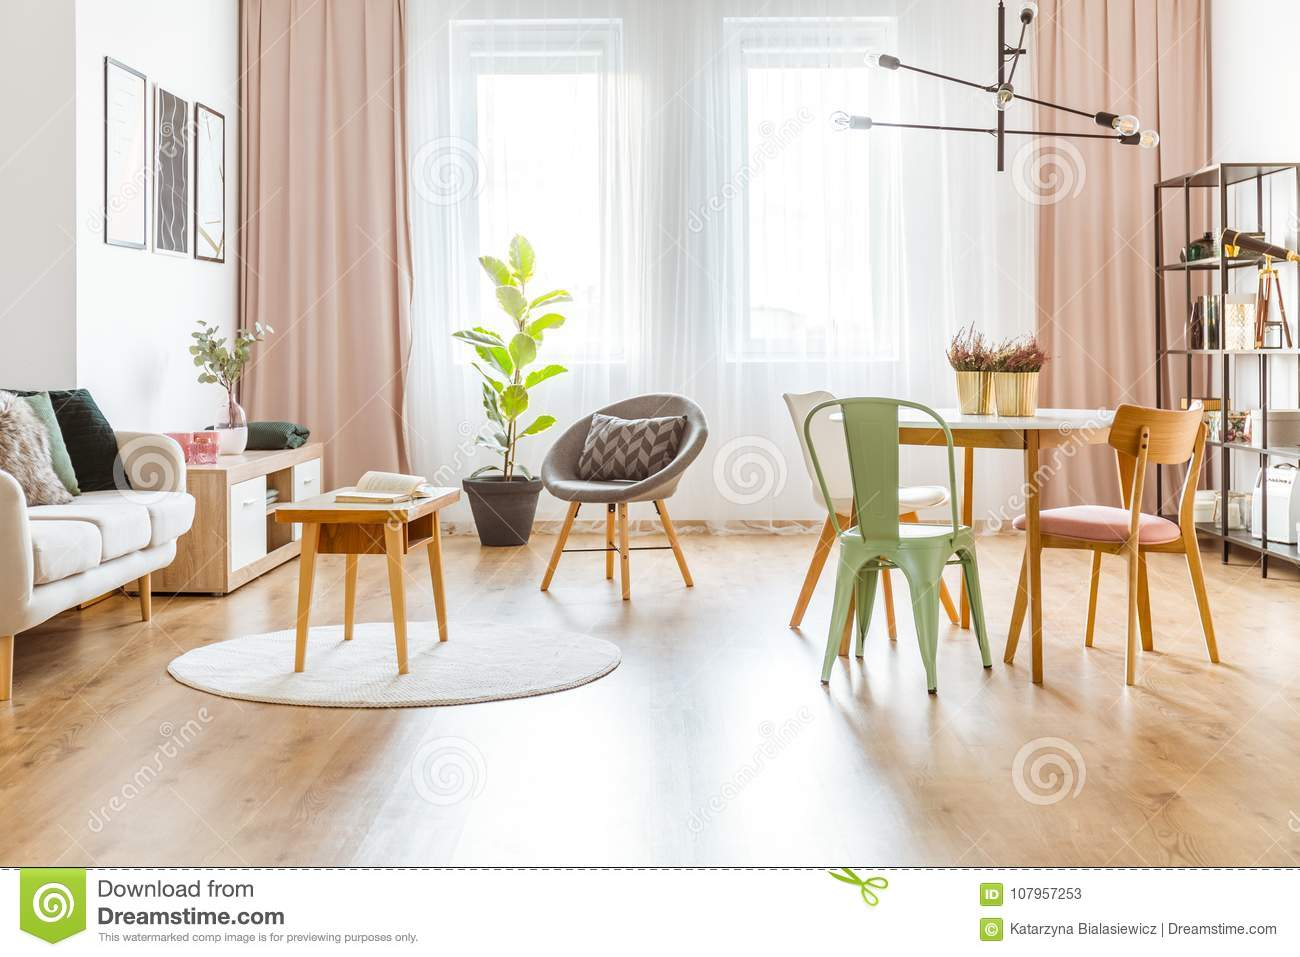 Mint and pink living room stock image. Image of cloth - 107957253